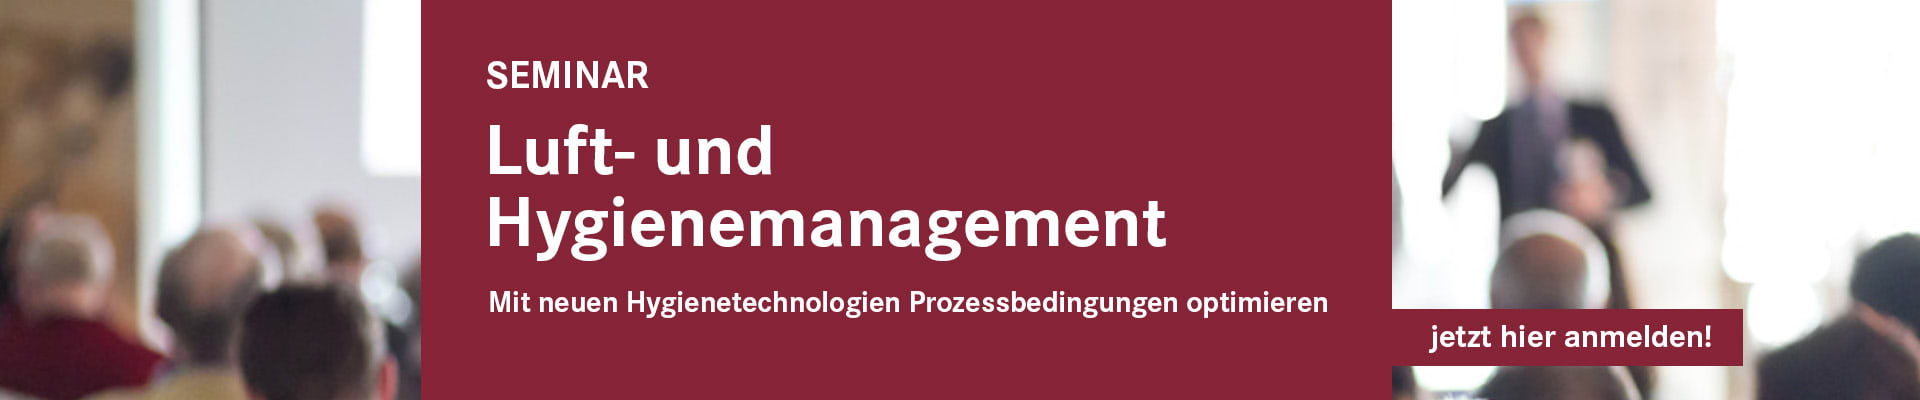 Luft- und Hygienemanagement